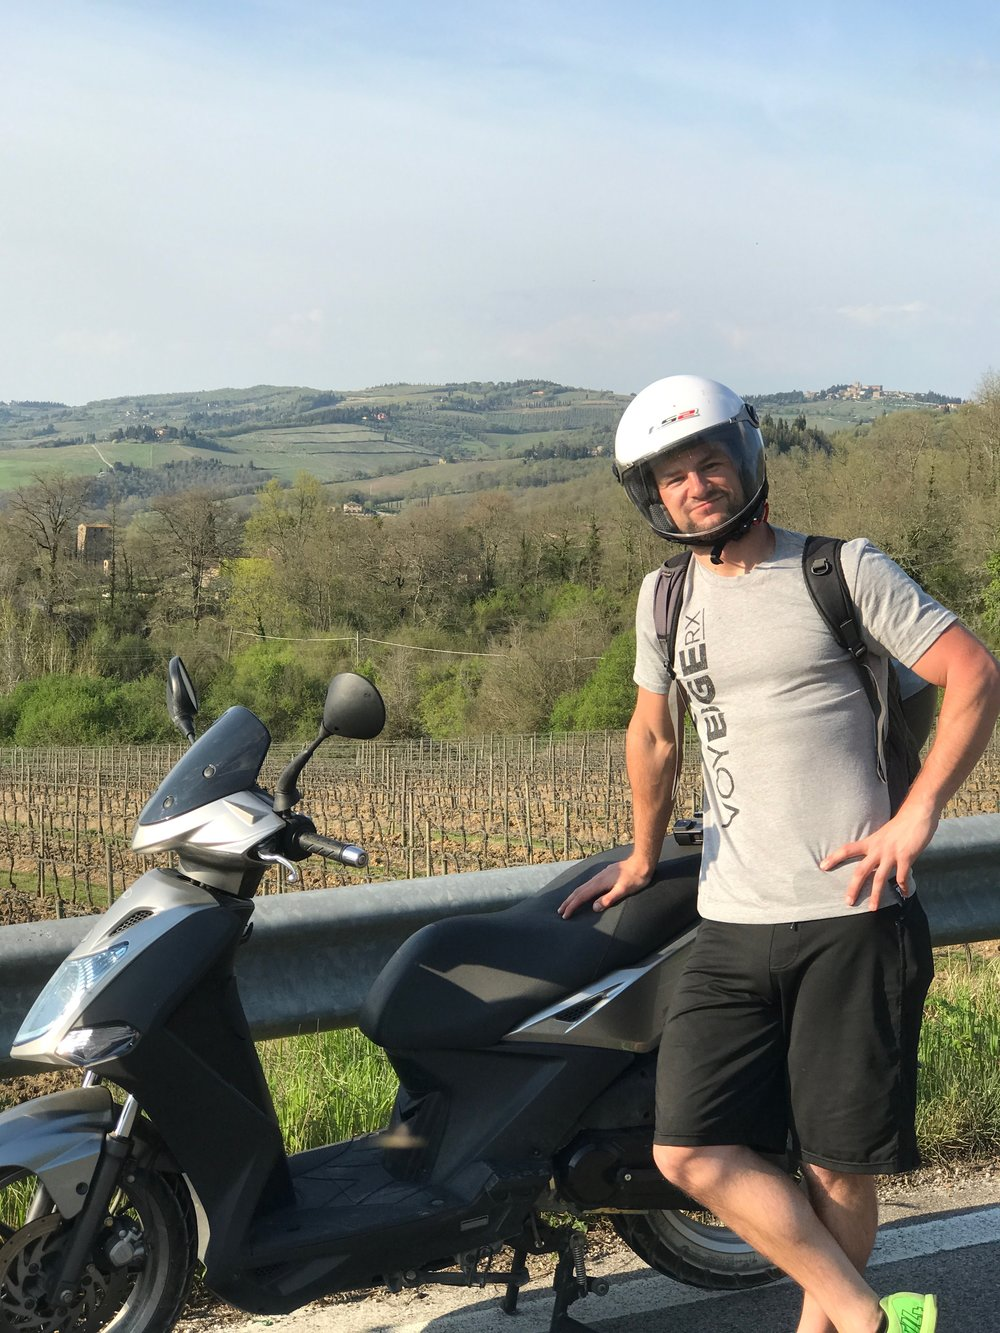 Proof of Tony riding a vespa in Chianti